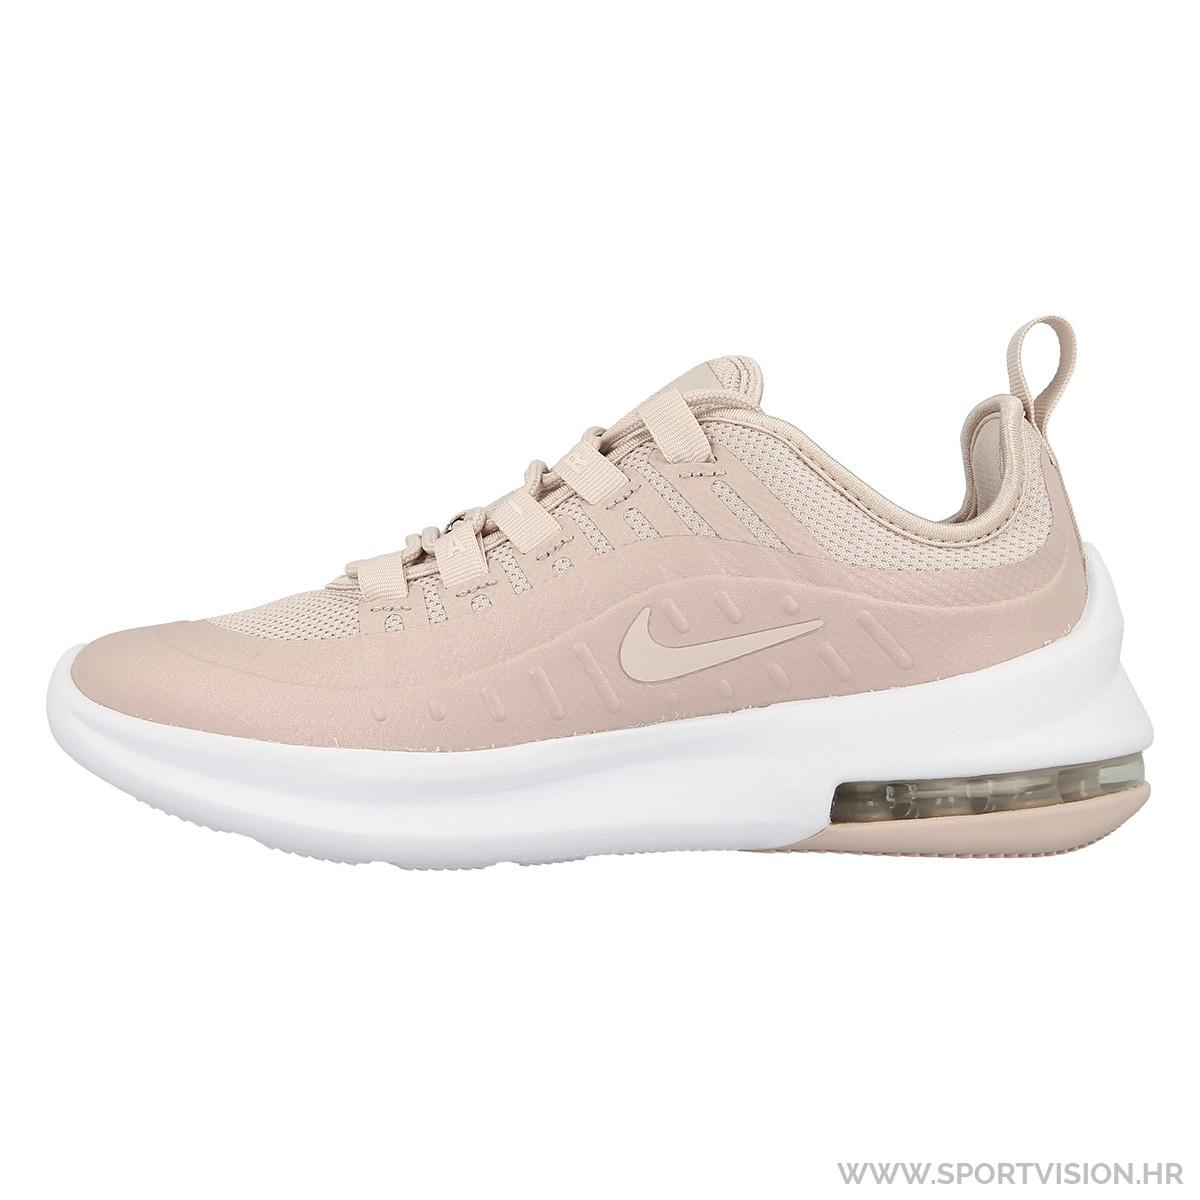 NIKE AIR MAX AXIS SE (GS)